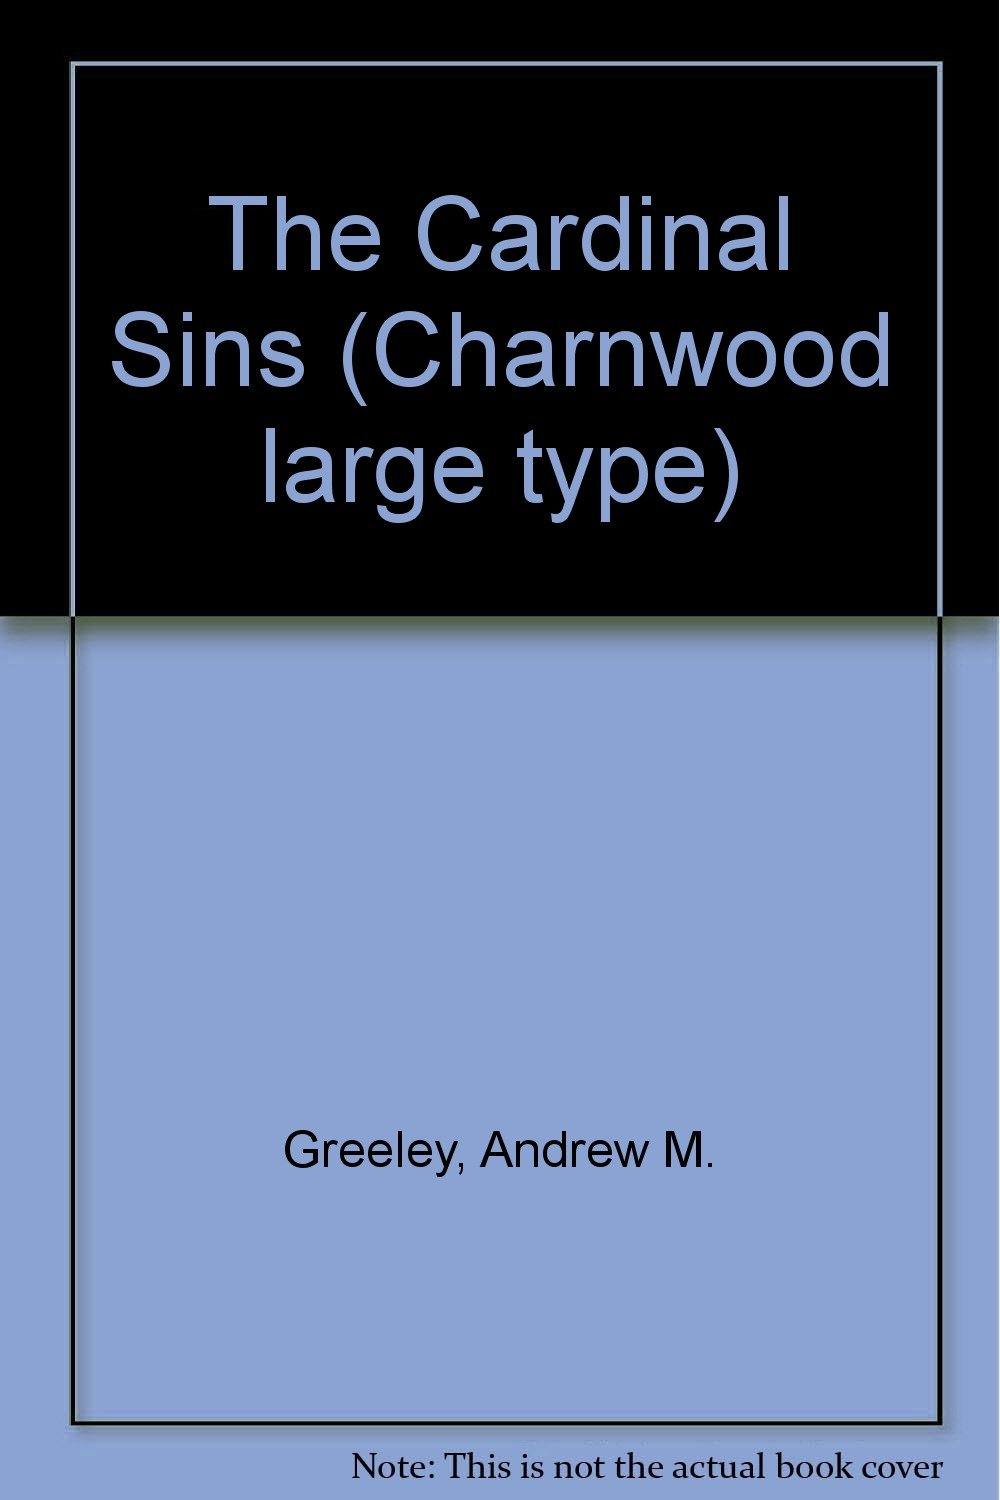 The Cardinal Sins (Charnwood large type): A.M. Greeley ...